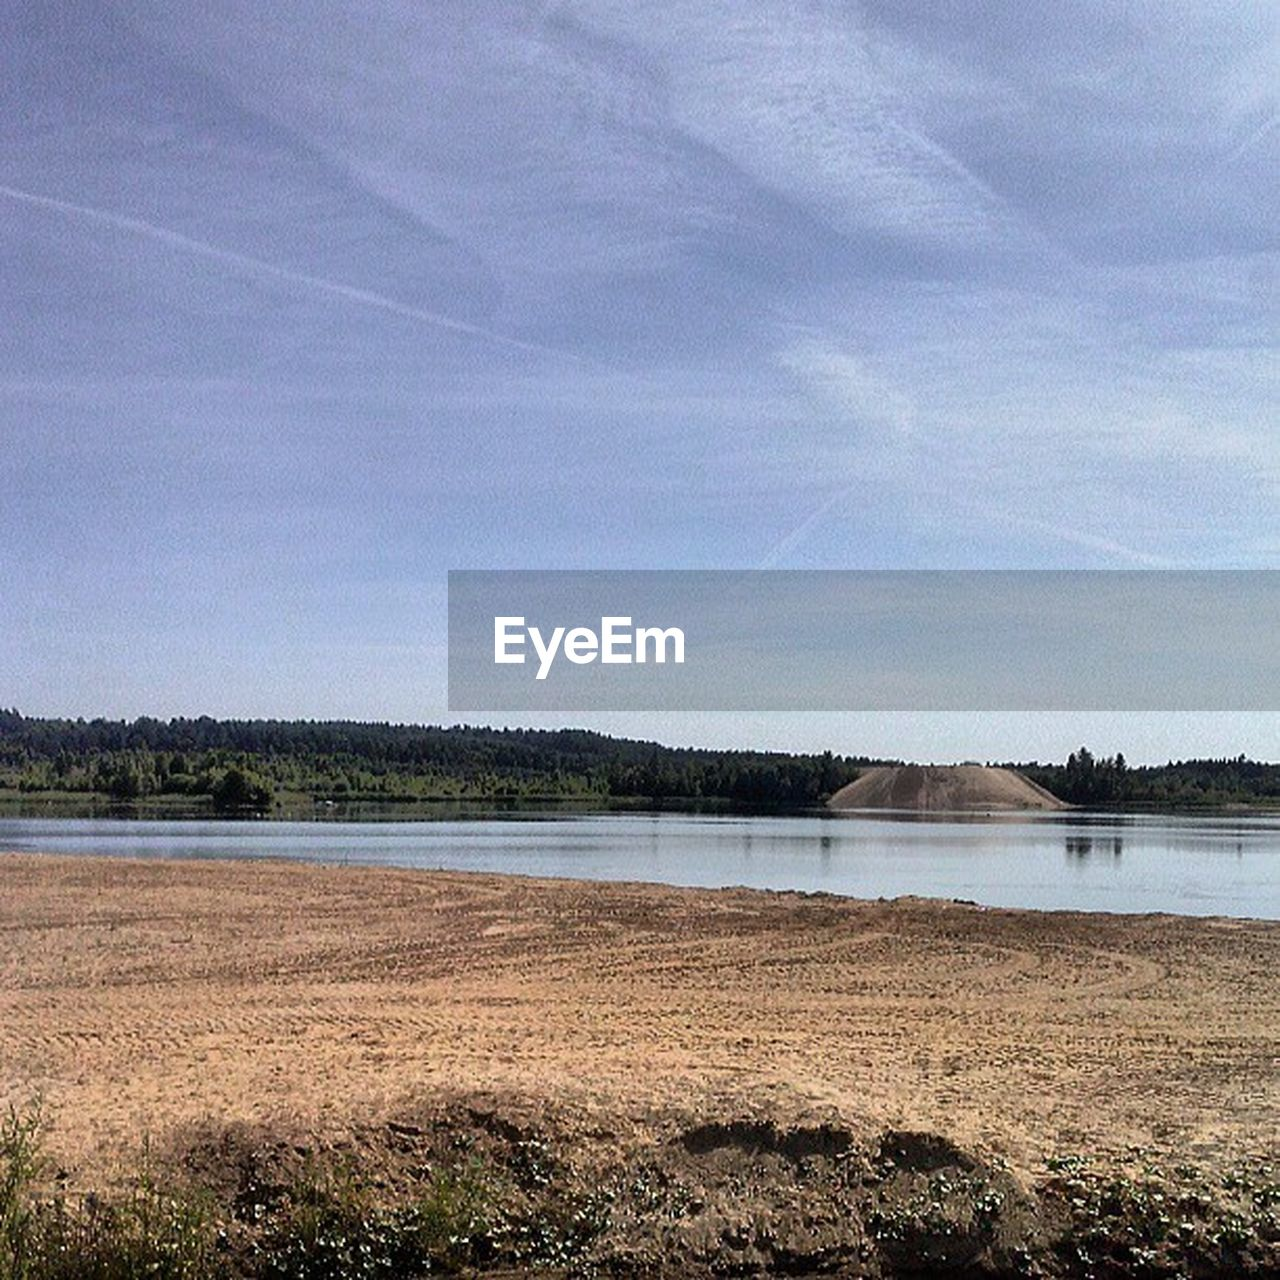 water, lake, nature, sky, scenics, tranquility, beauty in nature, tranquil scene, day, outdoors, no people, beach, landscape, tree